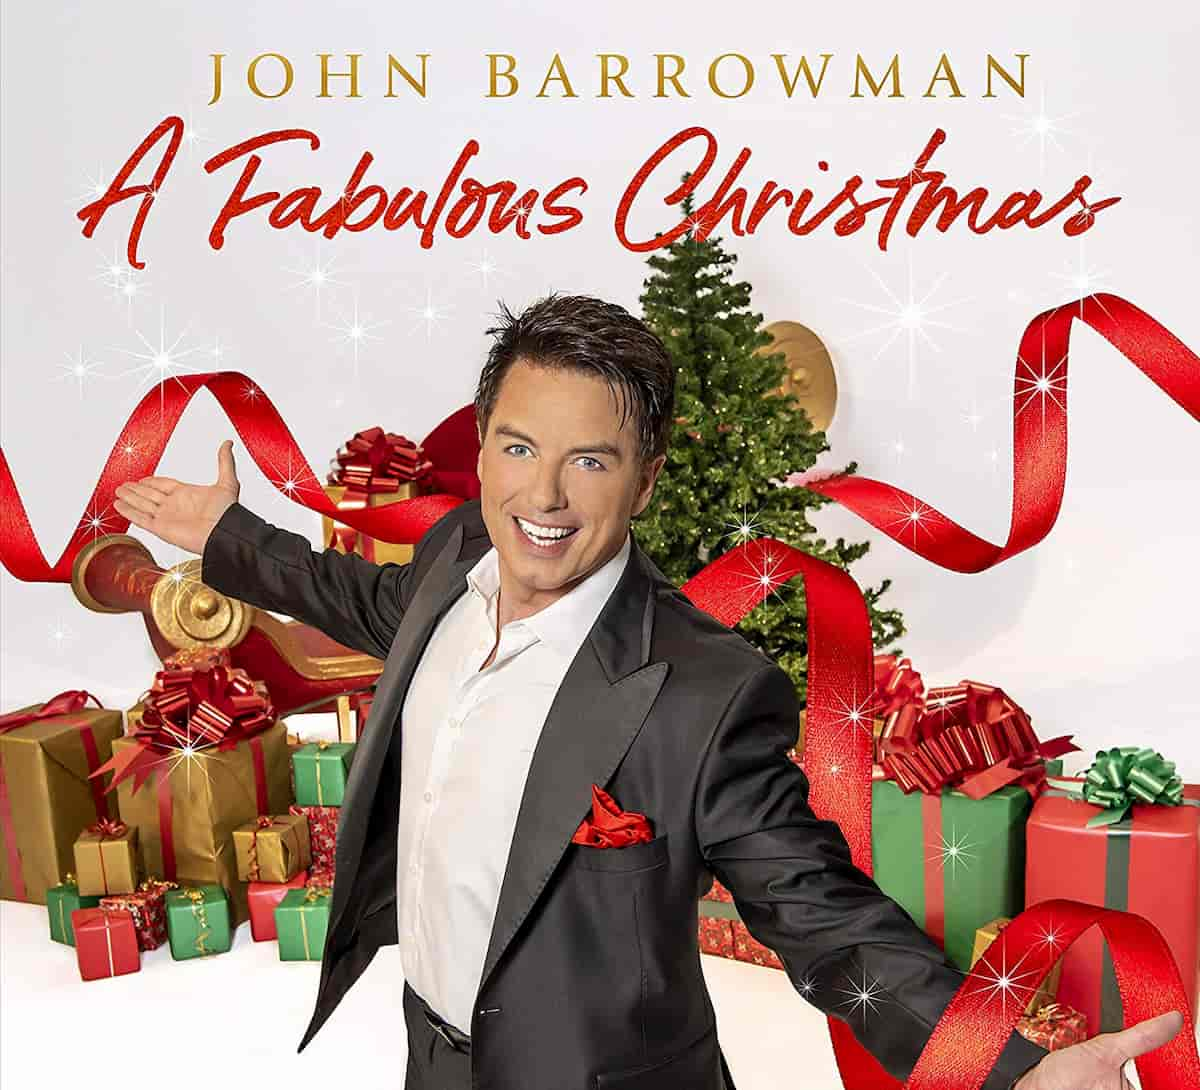 John Barrowman - A Fabulous Christmas